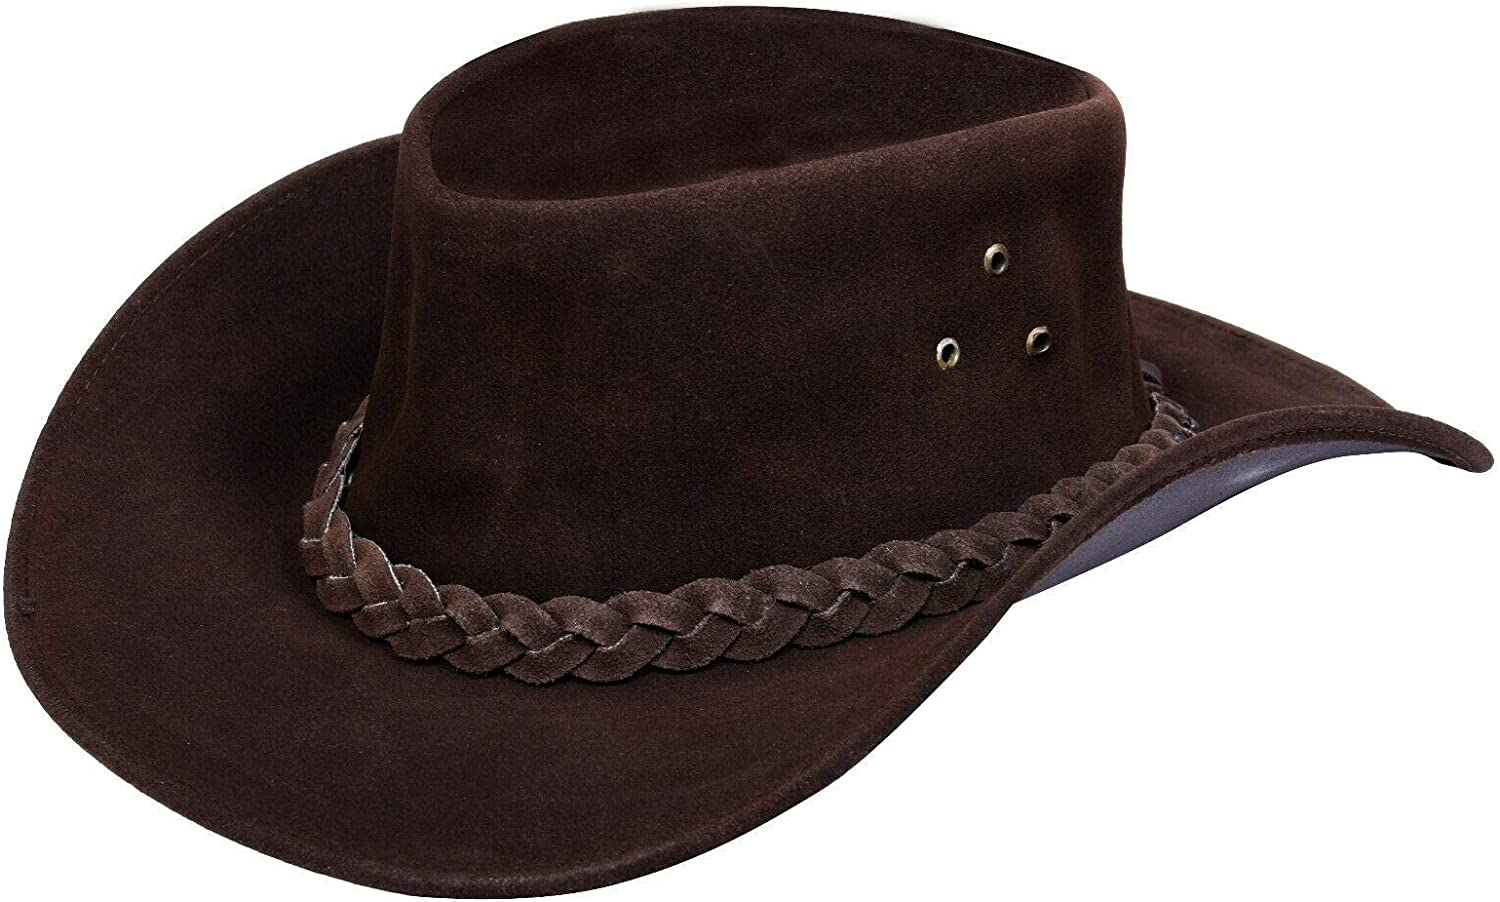 Australian Bargain Max 84% OFF Unisex Western Style Cowboy Outback Suede Leathe Real